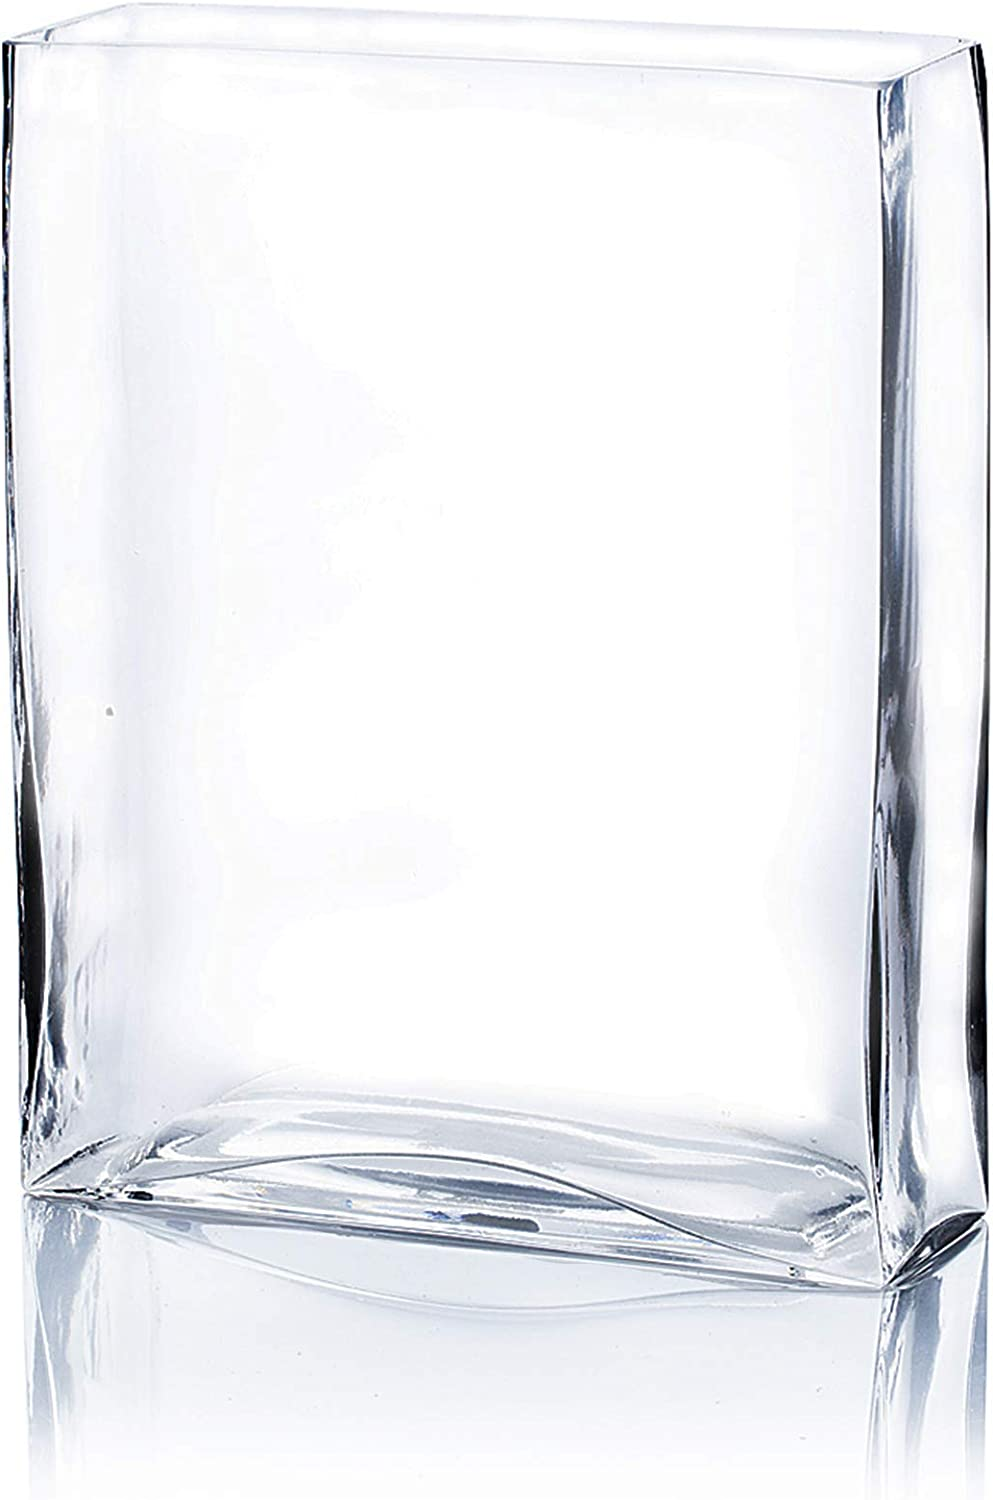 Planter Terrarium Clear Flat Pan Style Container Floral Centerpiece for Wedding Party Event Home Office Decor Open Width 8 Height 4 WGV Cylinder Vase 1 Piece